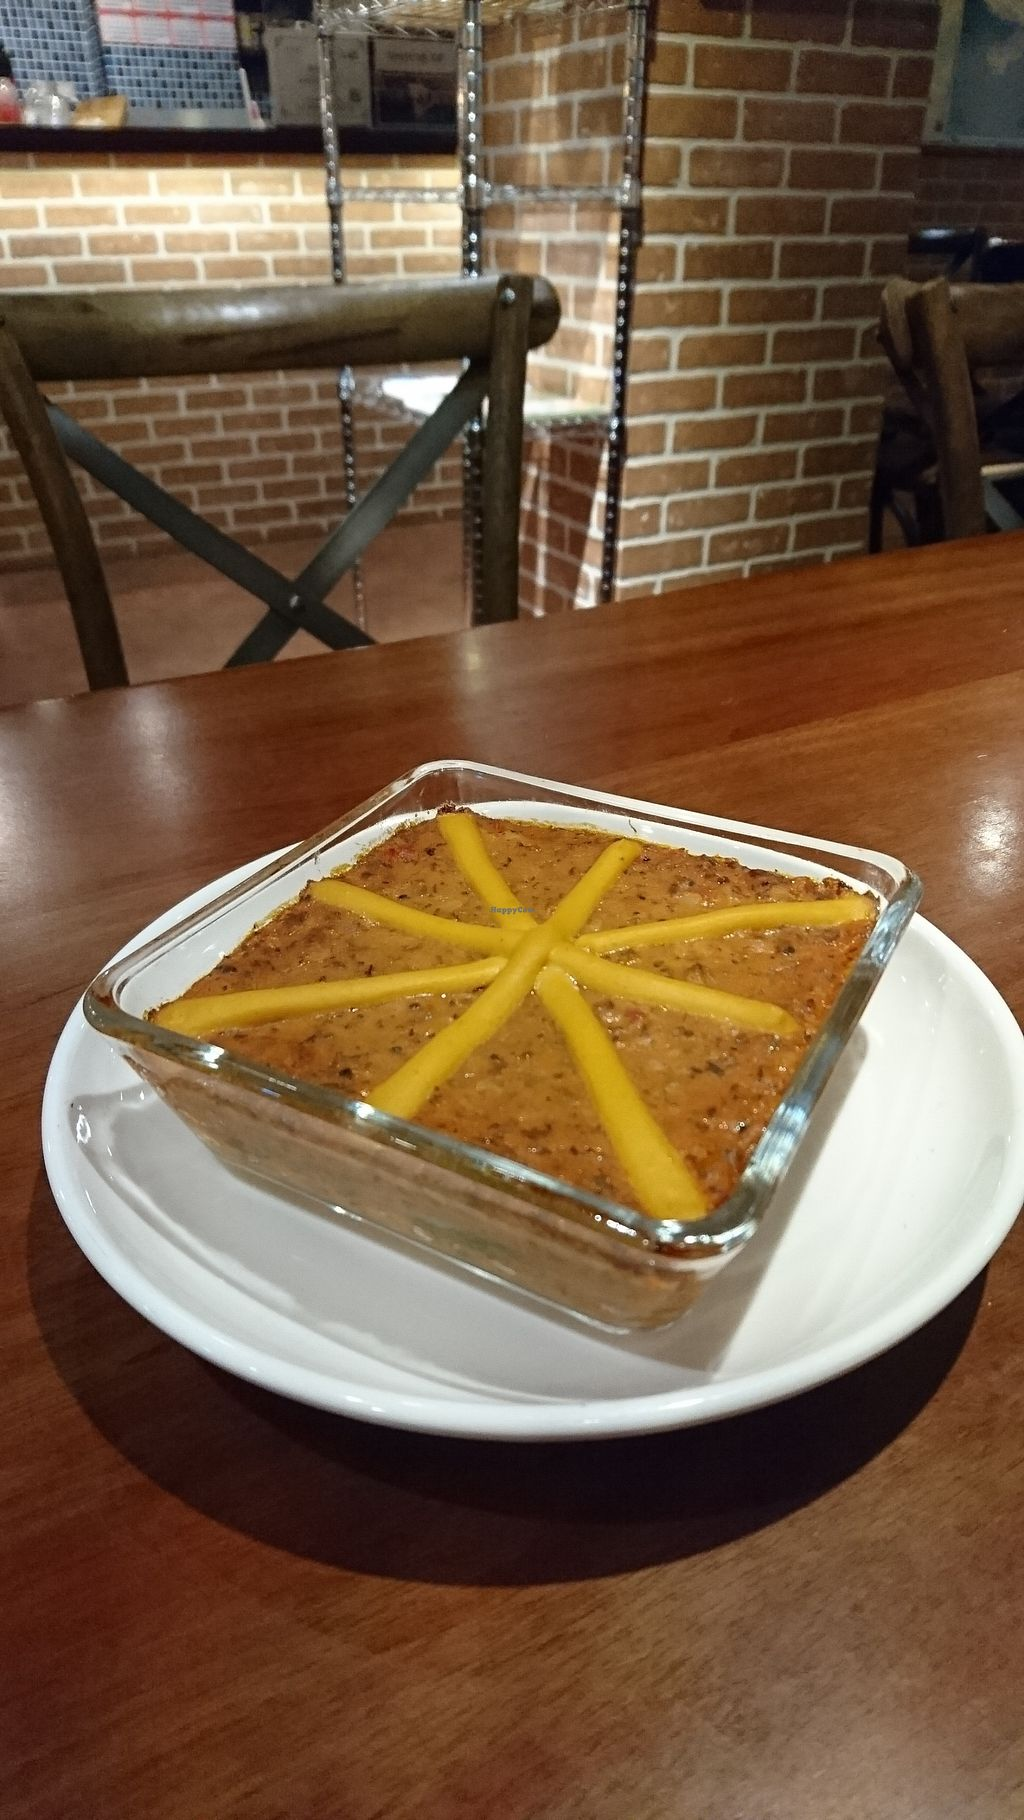 """Photo of Fresh Bakery & Cafe - Vegan Taipei  by <a href=""""/members/profile/V-for-Vegan"""">V-for-Vegan</a> <br/>Lasagne <br/> March 19, 2018  - <a href='/contact/abuse/image/37227/372922'>Report</a>"""